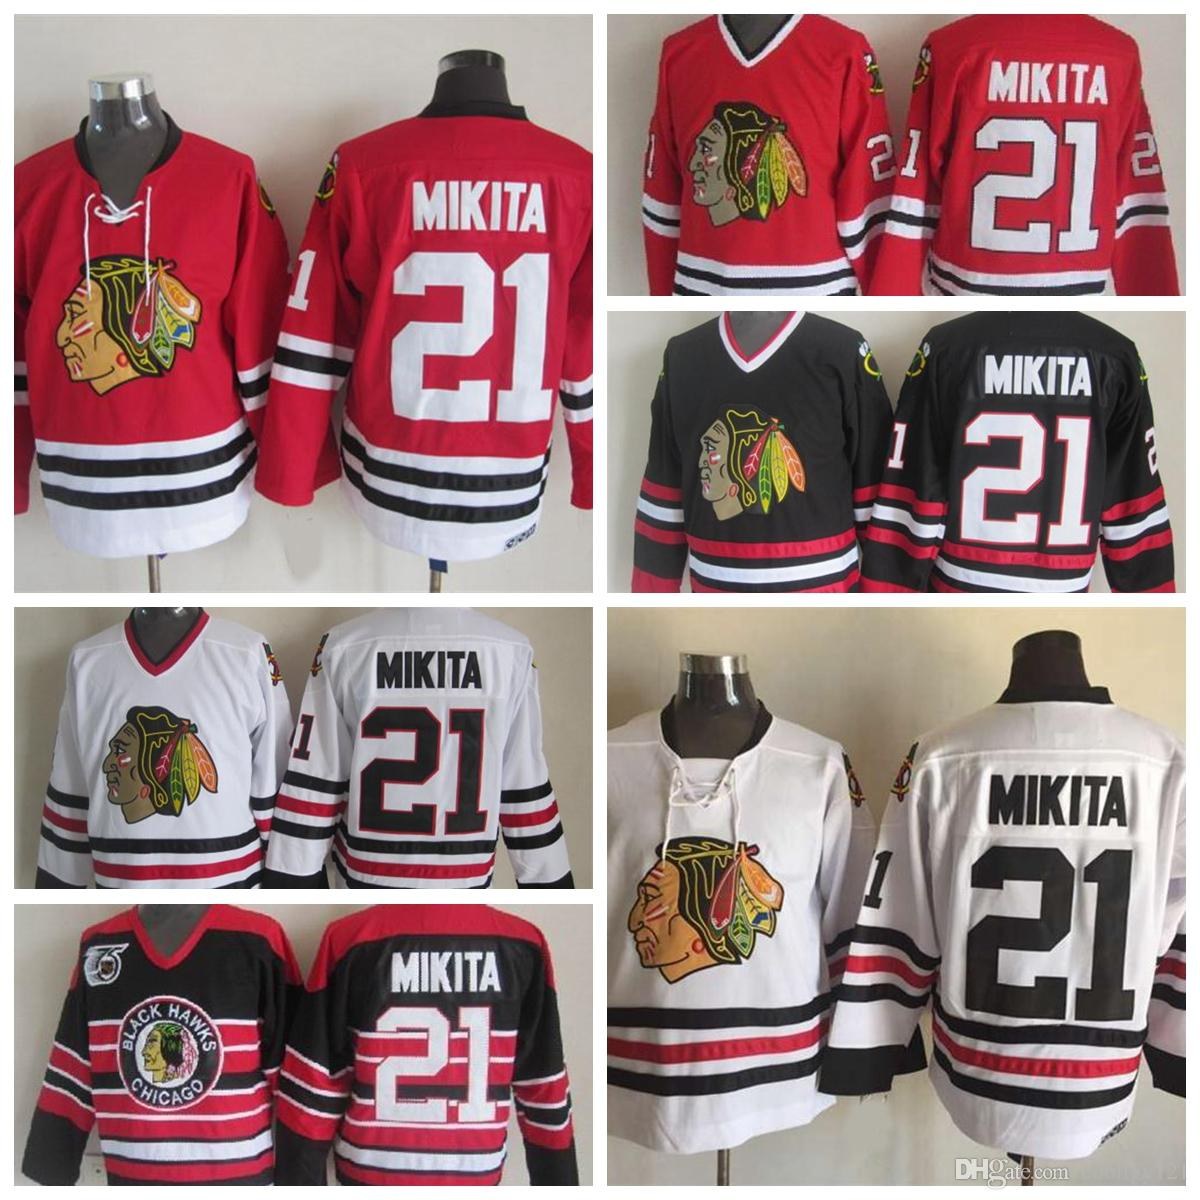 7bc1142f ... aliexpress throwback chicago blackhawks jerseys 21 stan mikita jerseys  home red white vintage and 75th anniversary